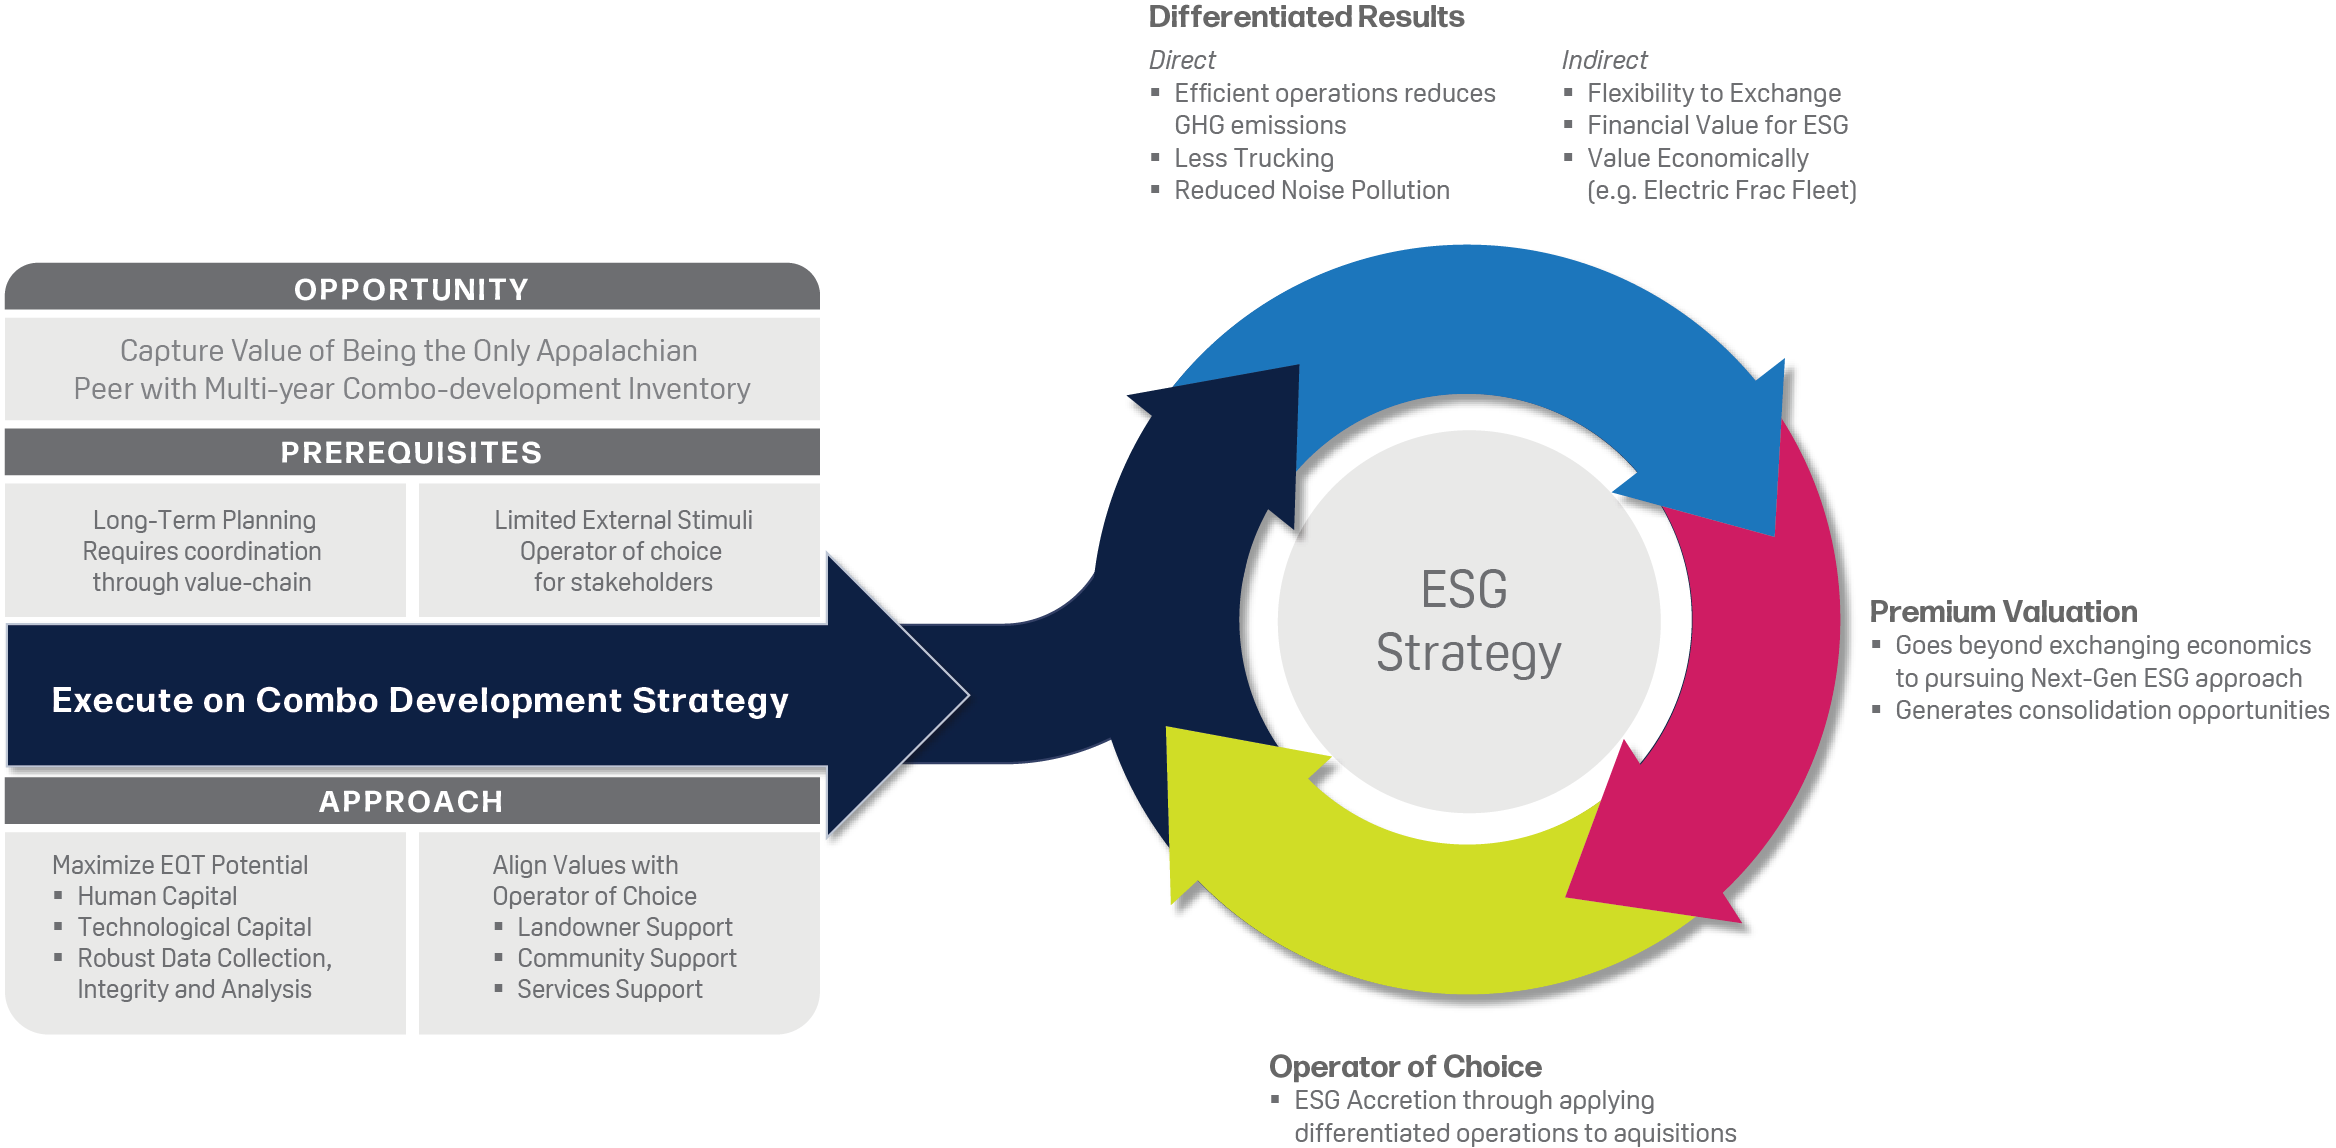 ESG underpins EQT's combo-development strategy to drive differentiated results, premium valuation, and ability to be the operator of choice.